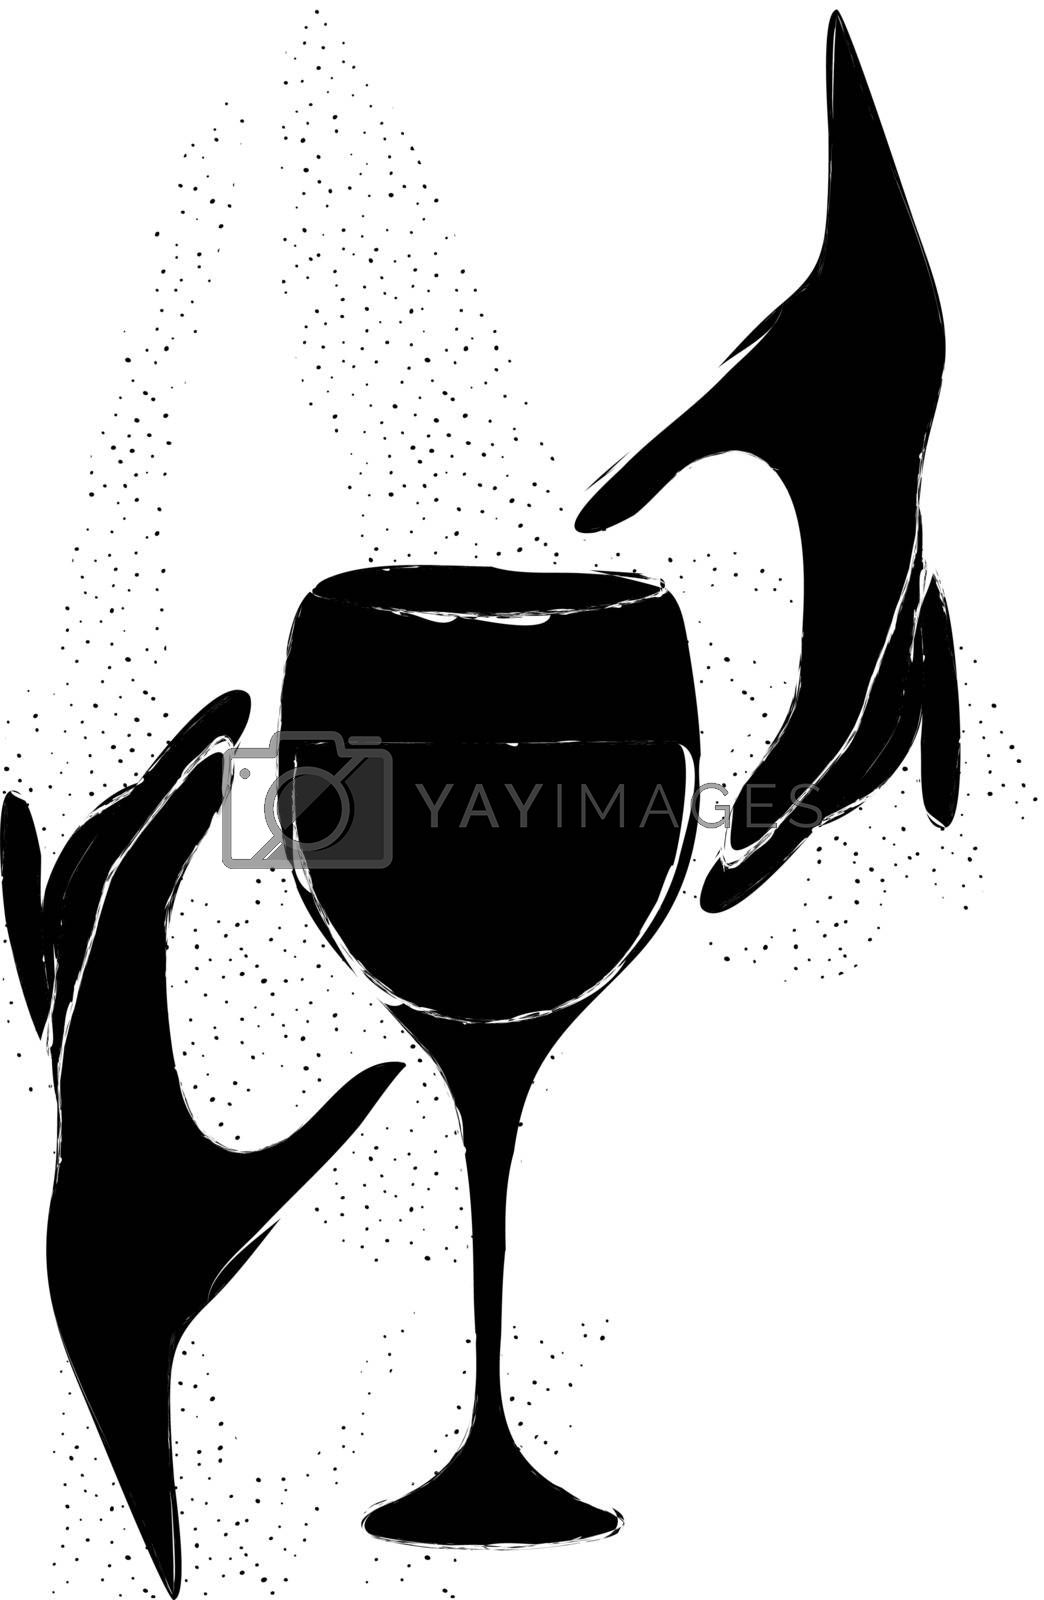 occult grunge illustration with two black silhouettes of hands and drinking glass on white backgroud